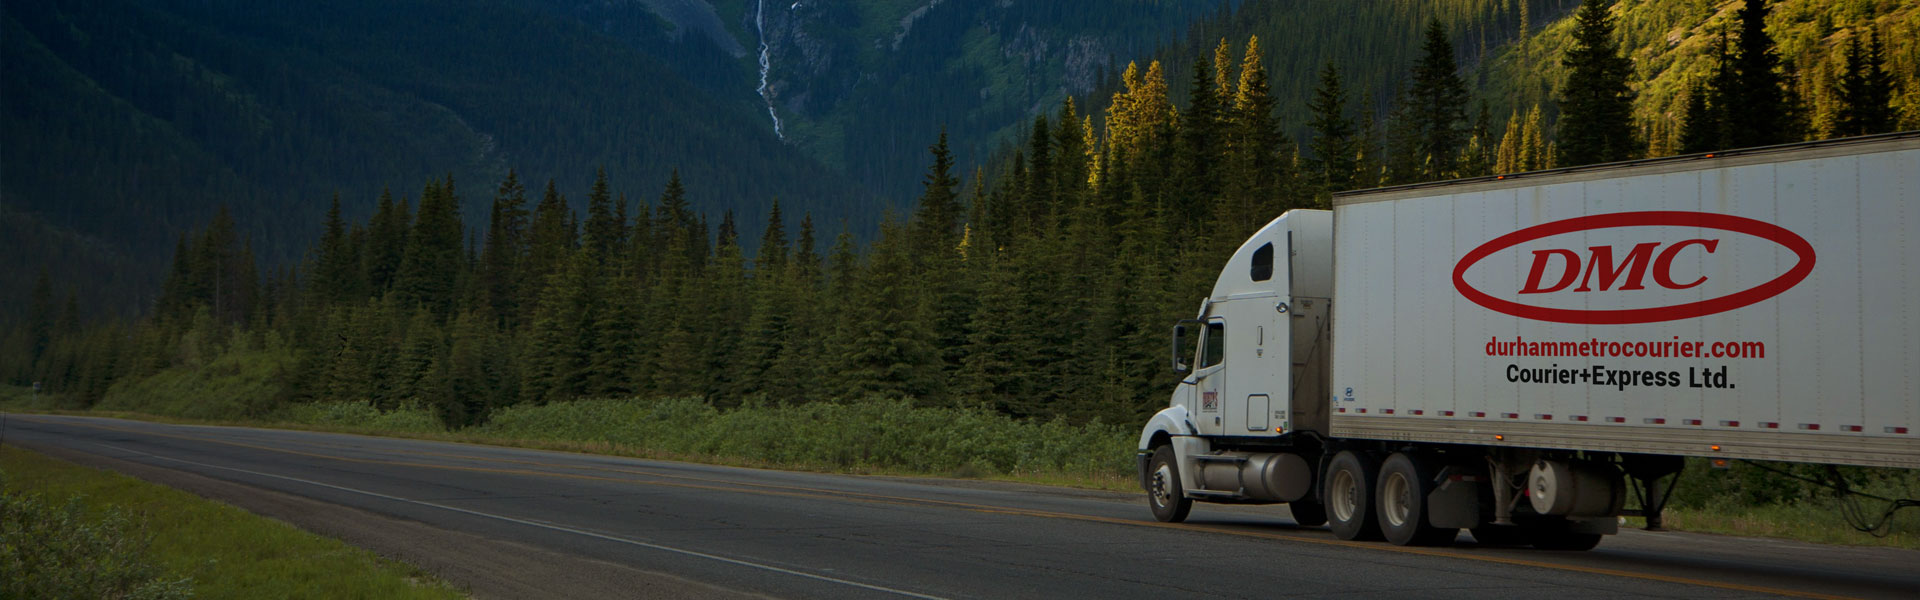 "<div class=""title"">LTL & FTL Truck Service</div><p>Do you need freight service? Whether you require full truckload or less than truckload, we'll ship to most points in North America. Call our office for a quote.</p> <p><a class=""pure-button pure-button-primary button-xlarge"" href=""/contact"" title=""contact us"">get a quote <em aria-hidden=""true"" class=""fa-angle-right fas fa-fw""></em></a></p>"